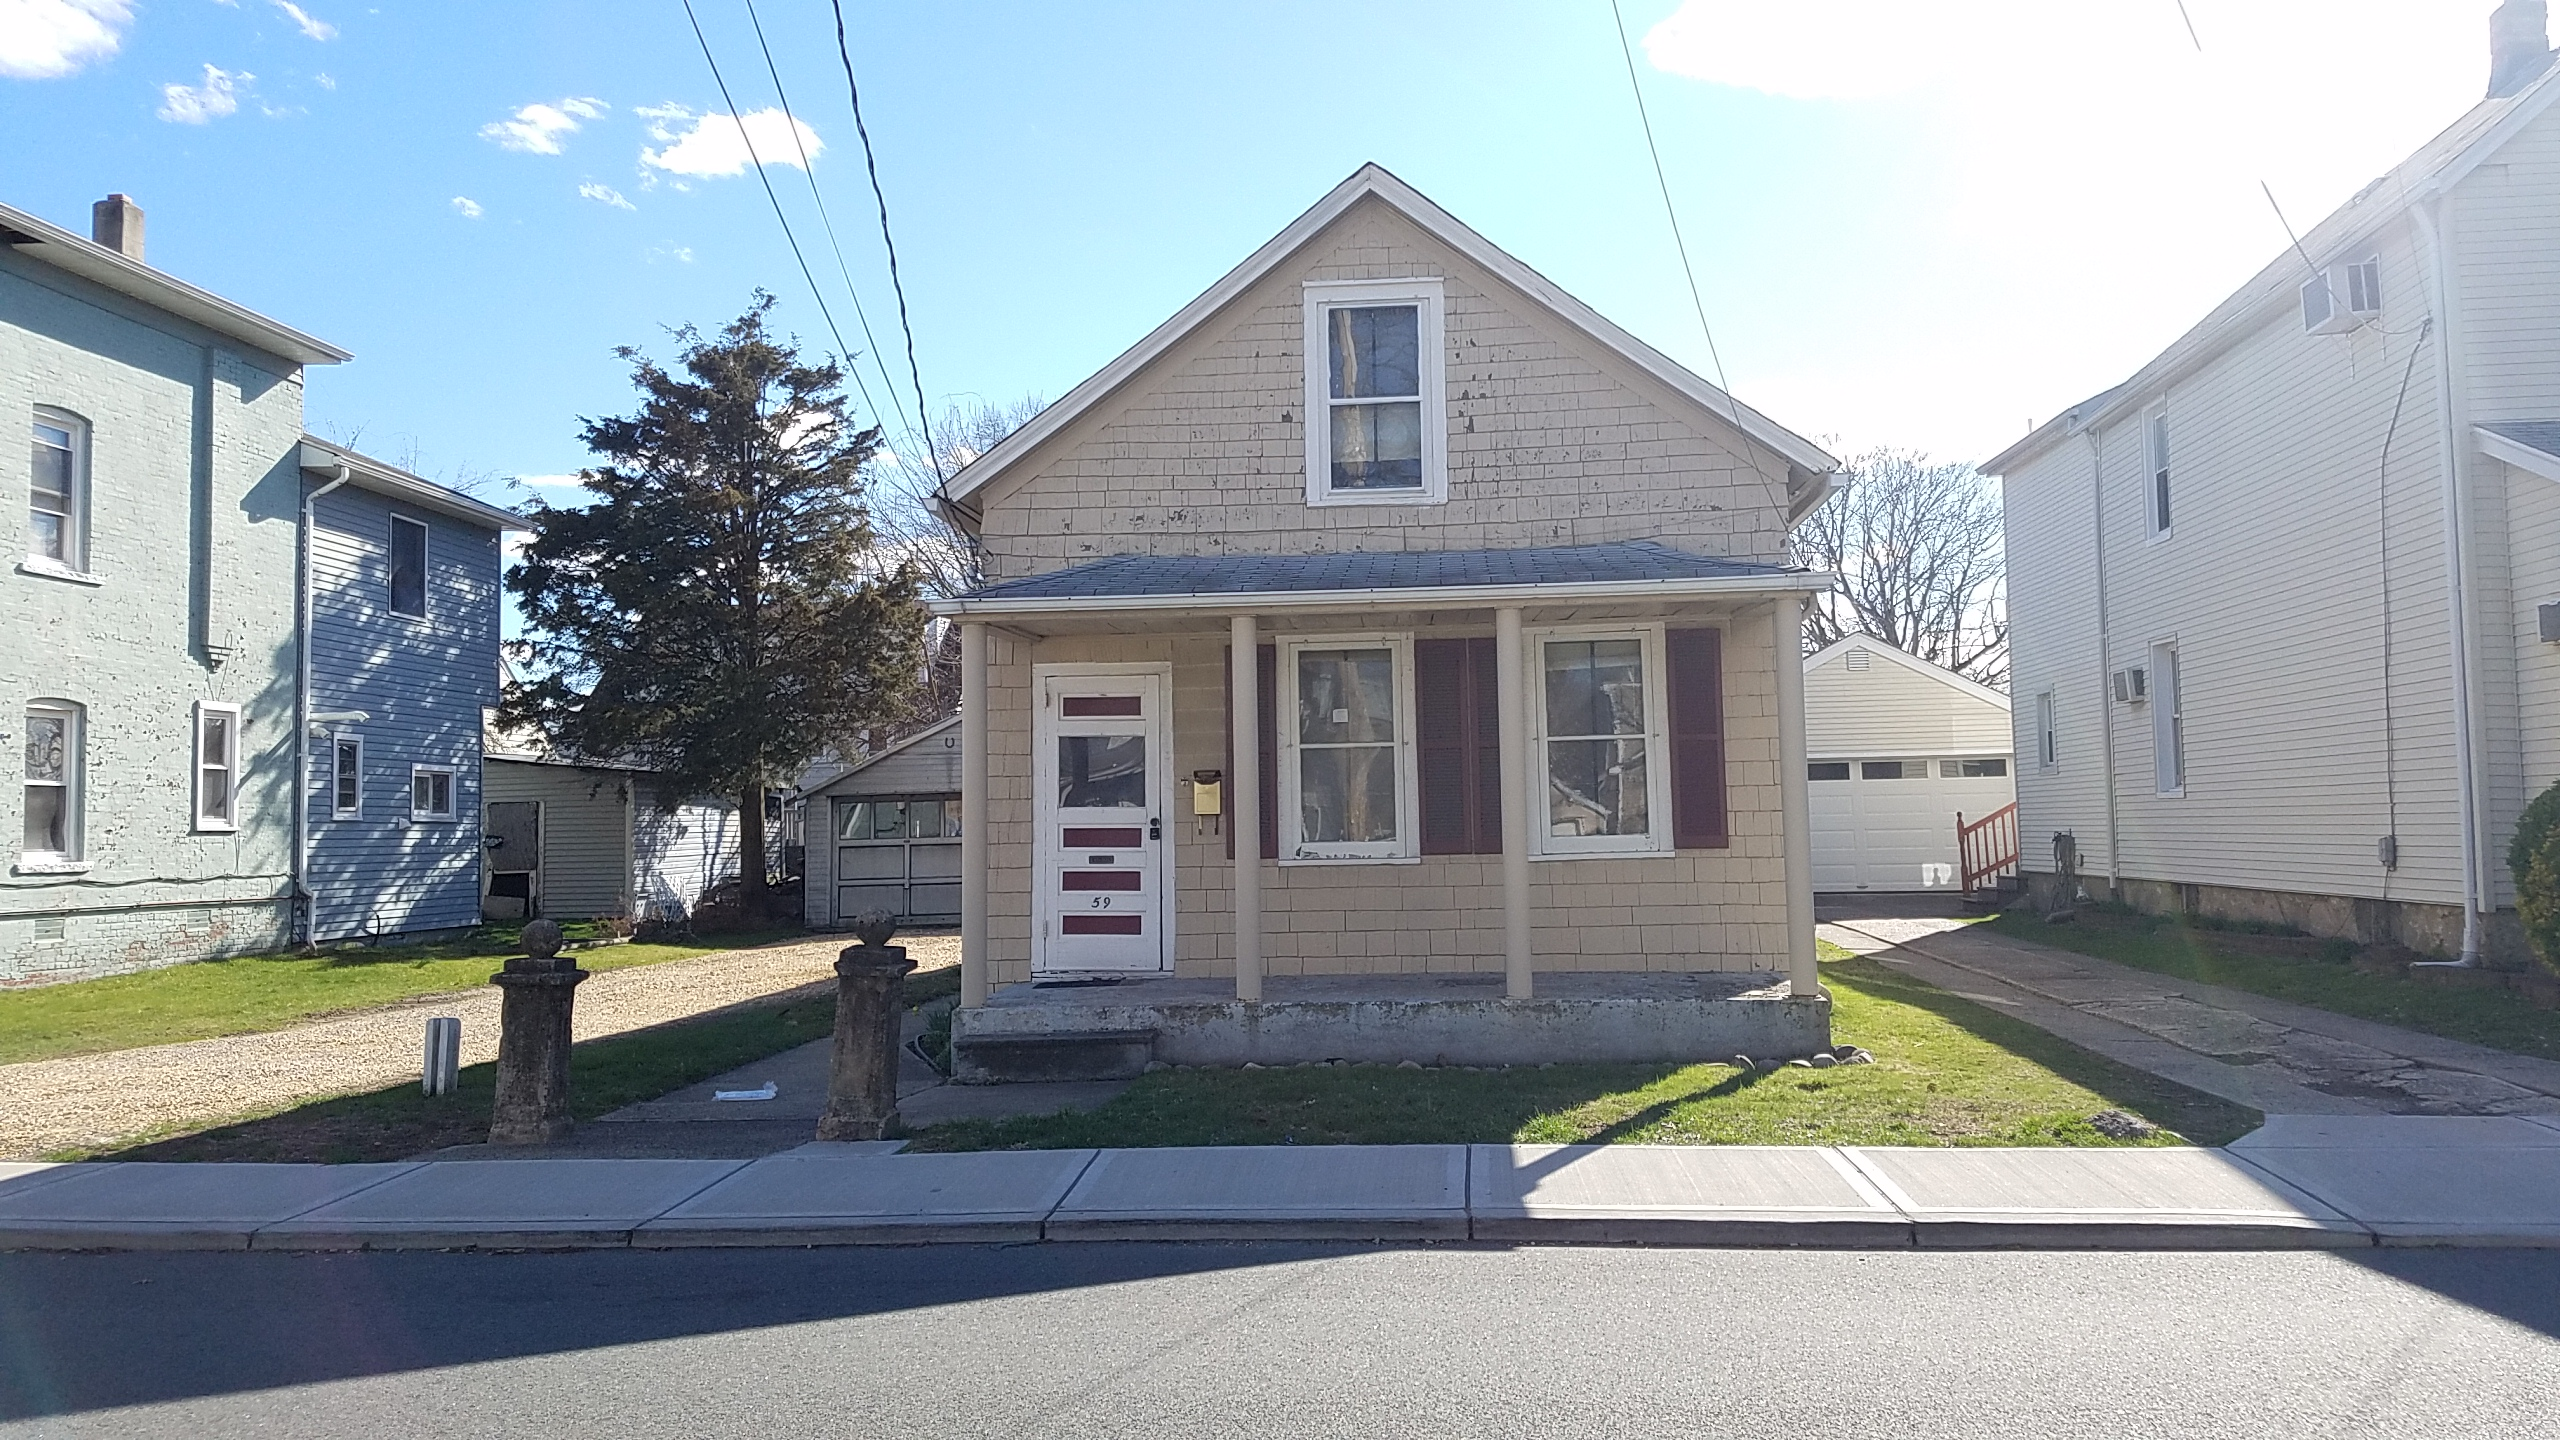 SOLD – 59 Marshall Ave. Little Ferry, NJ 07643 $180,000